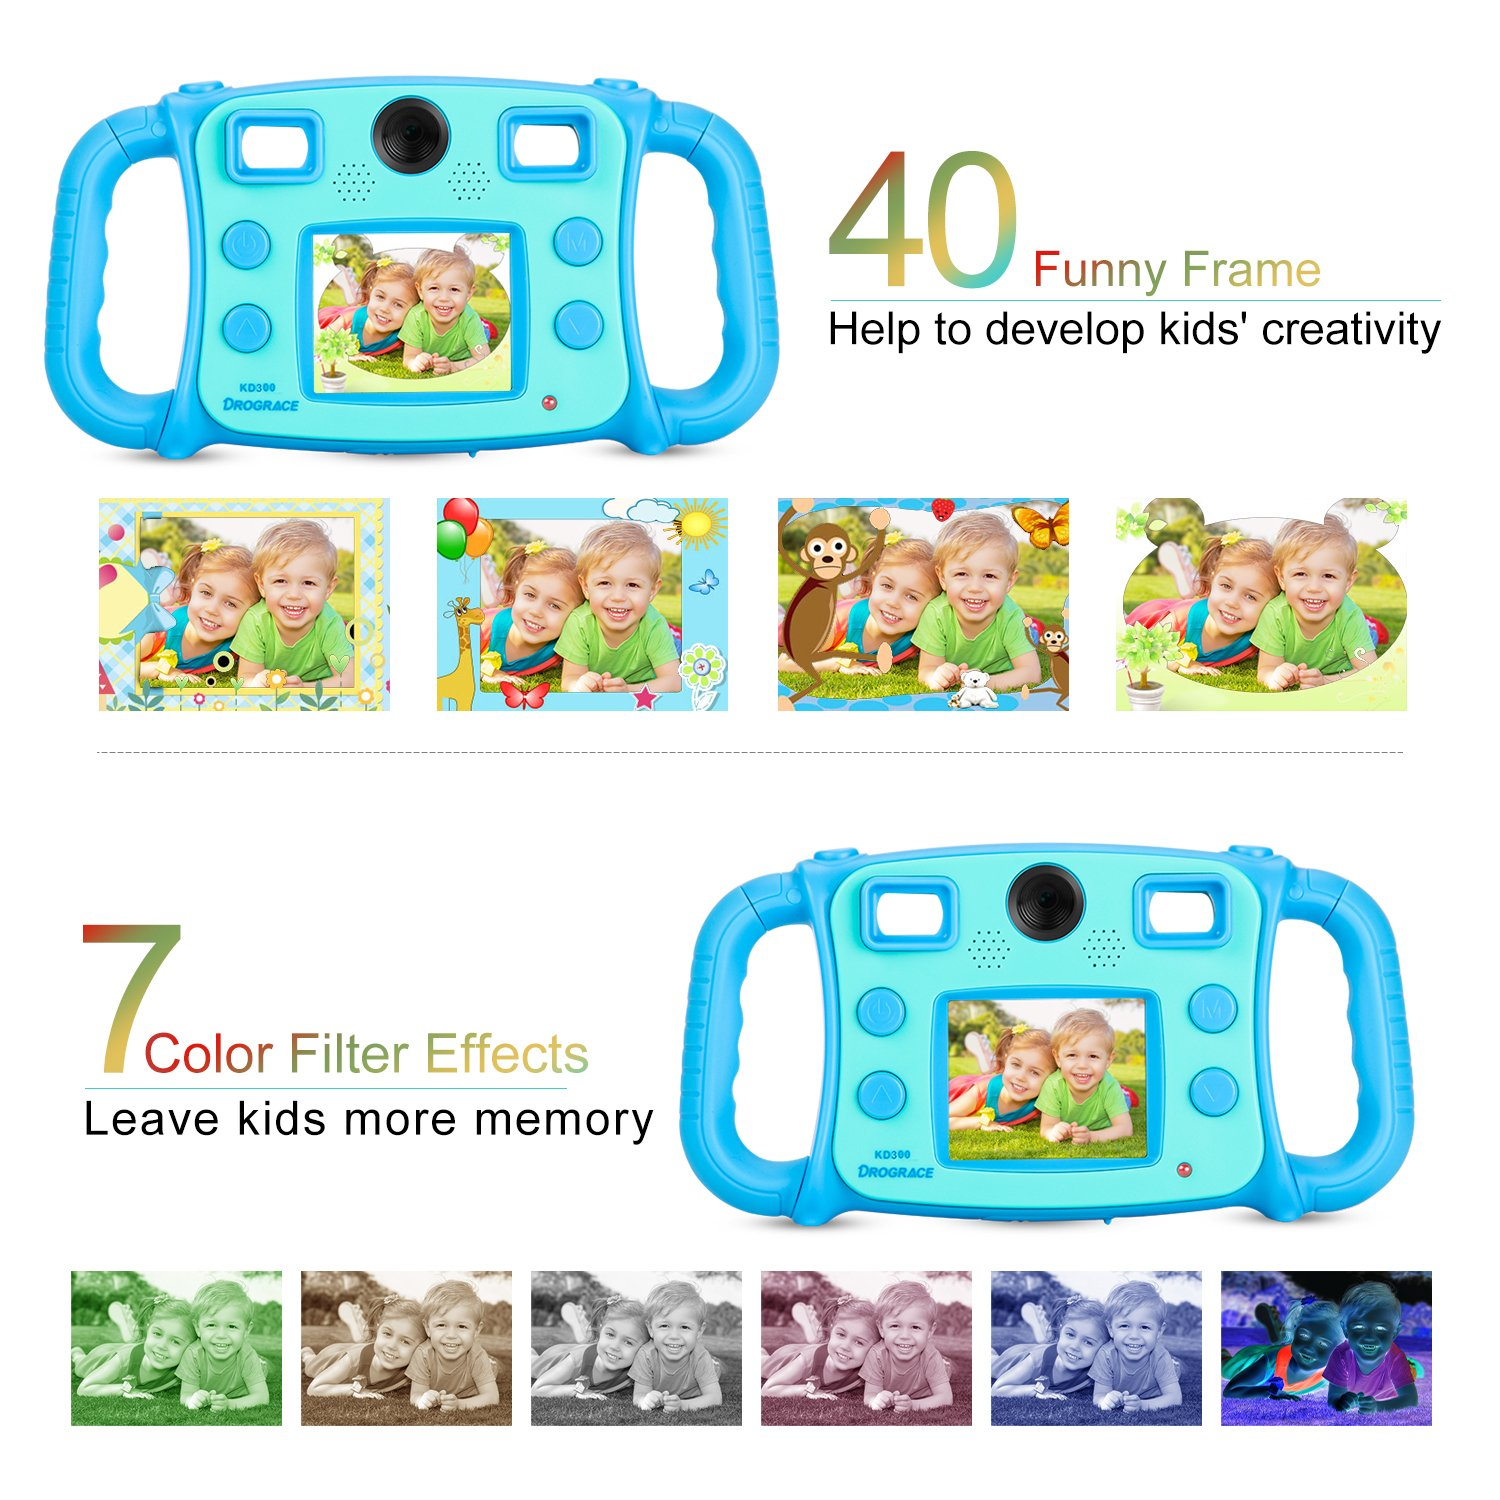 """Prograce Kids Camera Dual Selfie Camera 1080P HD Video Recorder Digital Action Camera Camcorder for Boys Girls Gifts 2.0"""" LCD Screen with 4X Digital Zoom and Funny Game(Blue) by PROGRACE (Image #5)"""